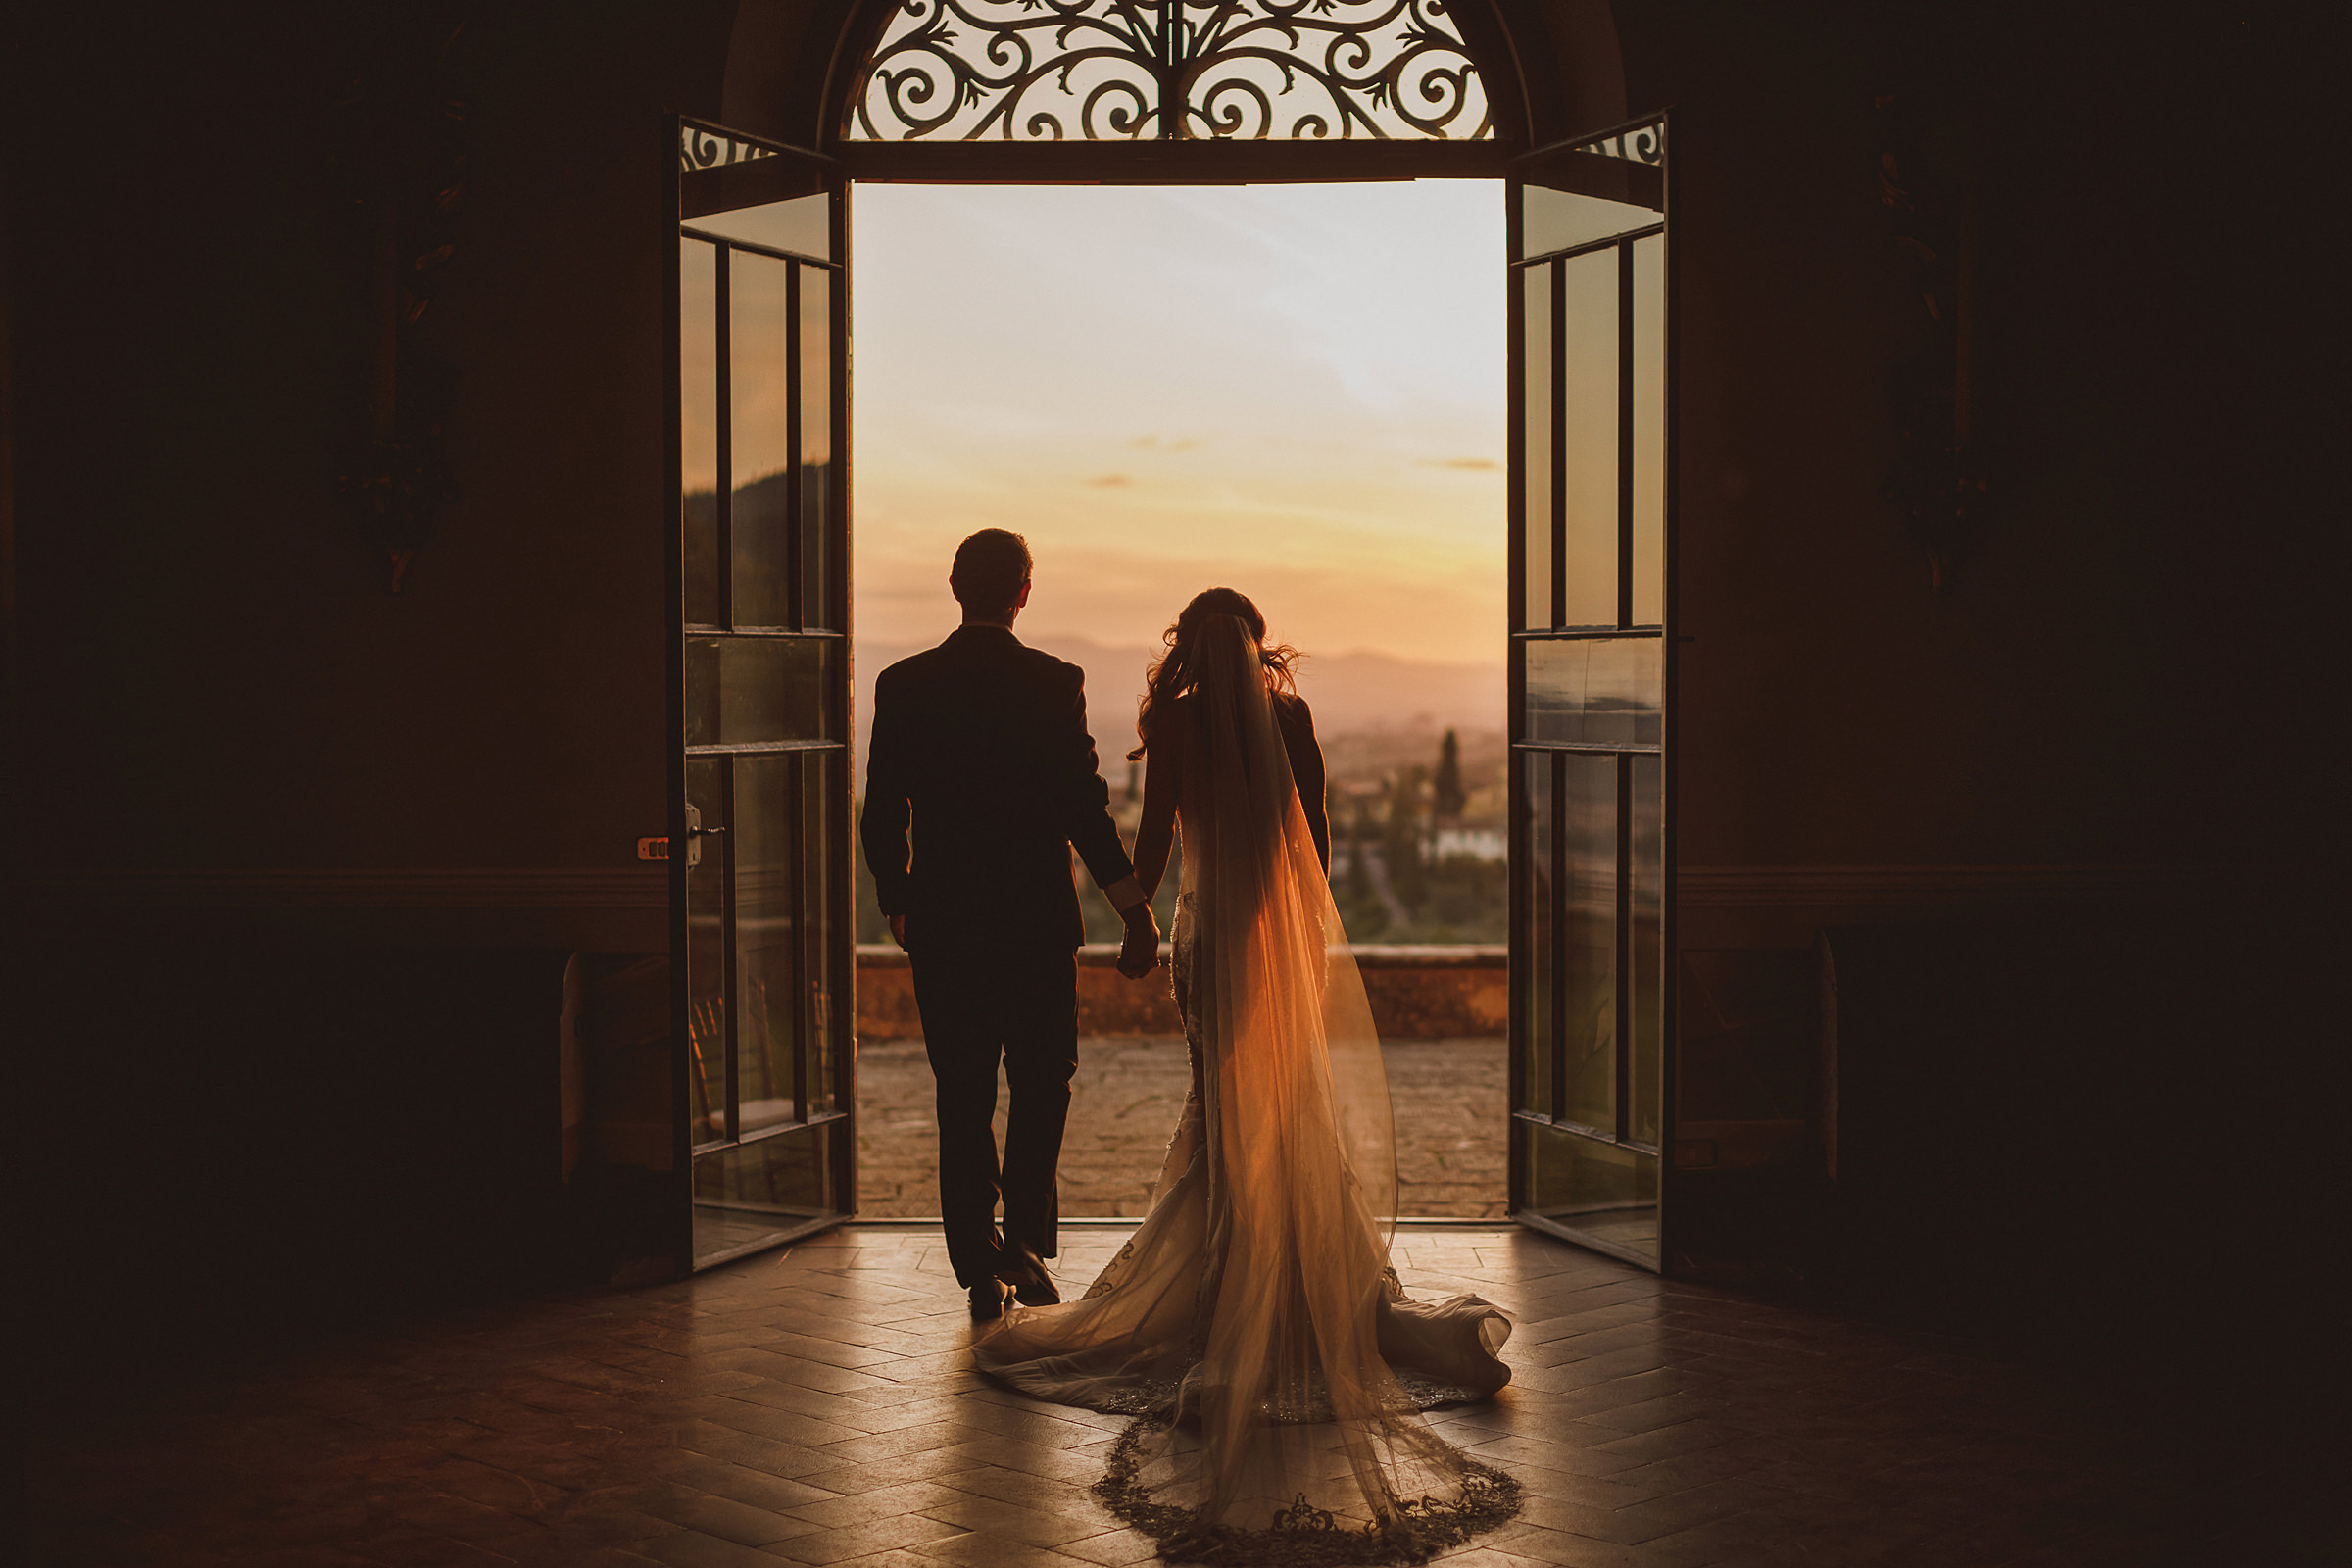 couple-in-ornate-doorway-at-sunset-ed-peers-photography